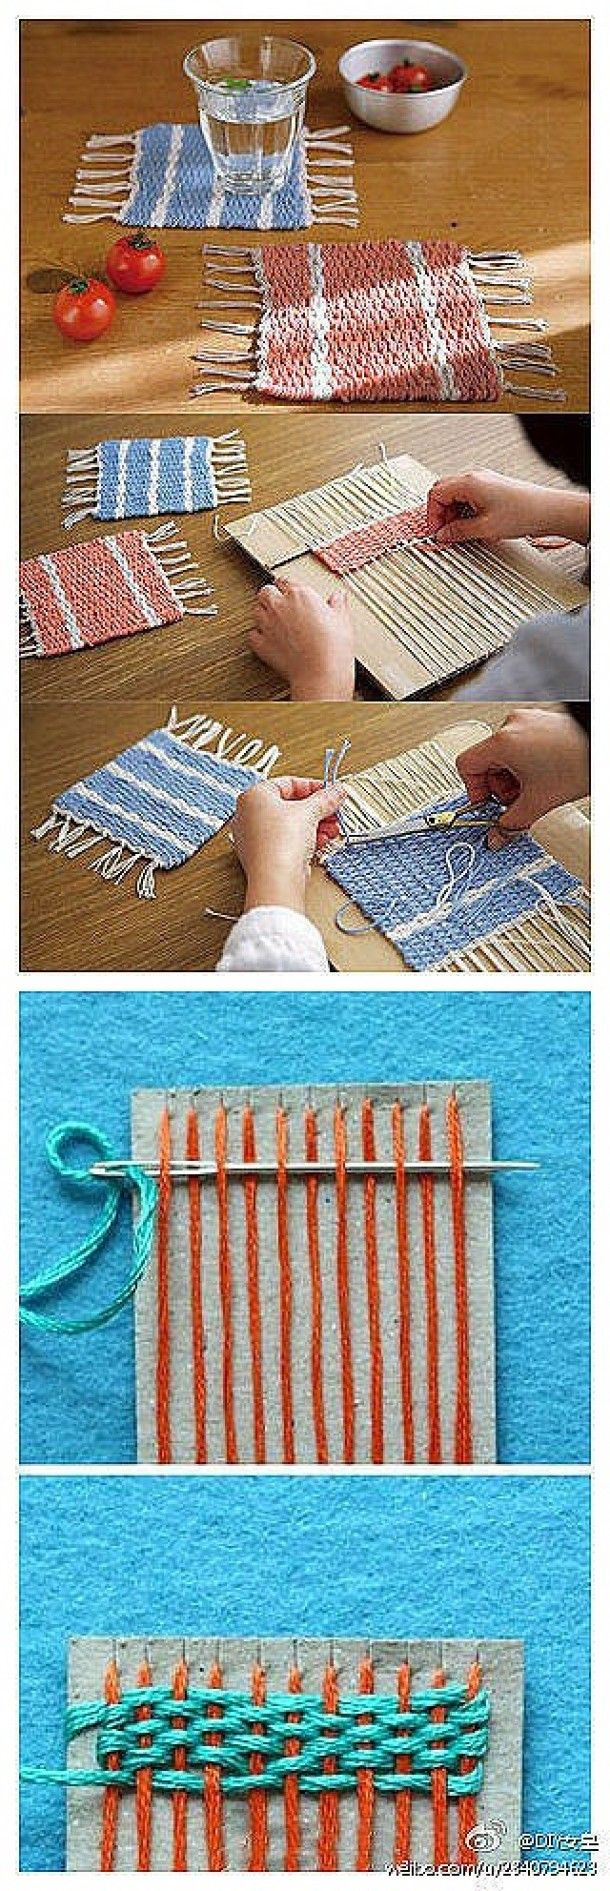 Woven coasters. I remember doing this in elementary school. Good for little kids. Only the picture.